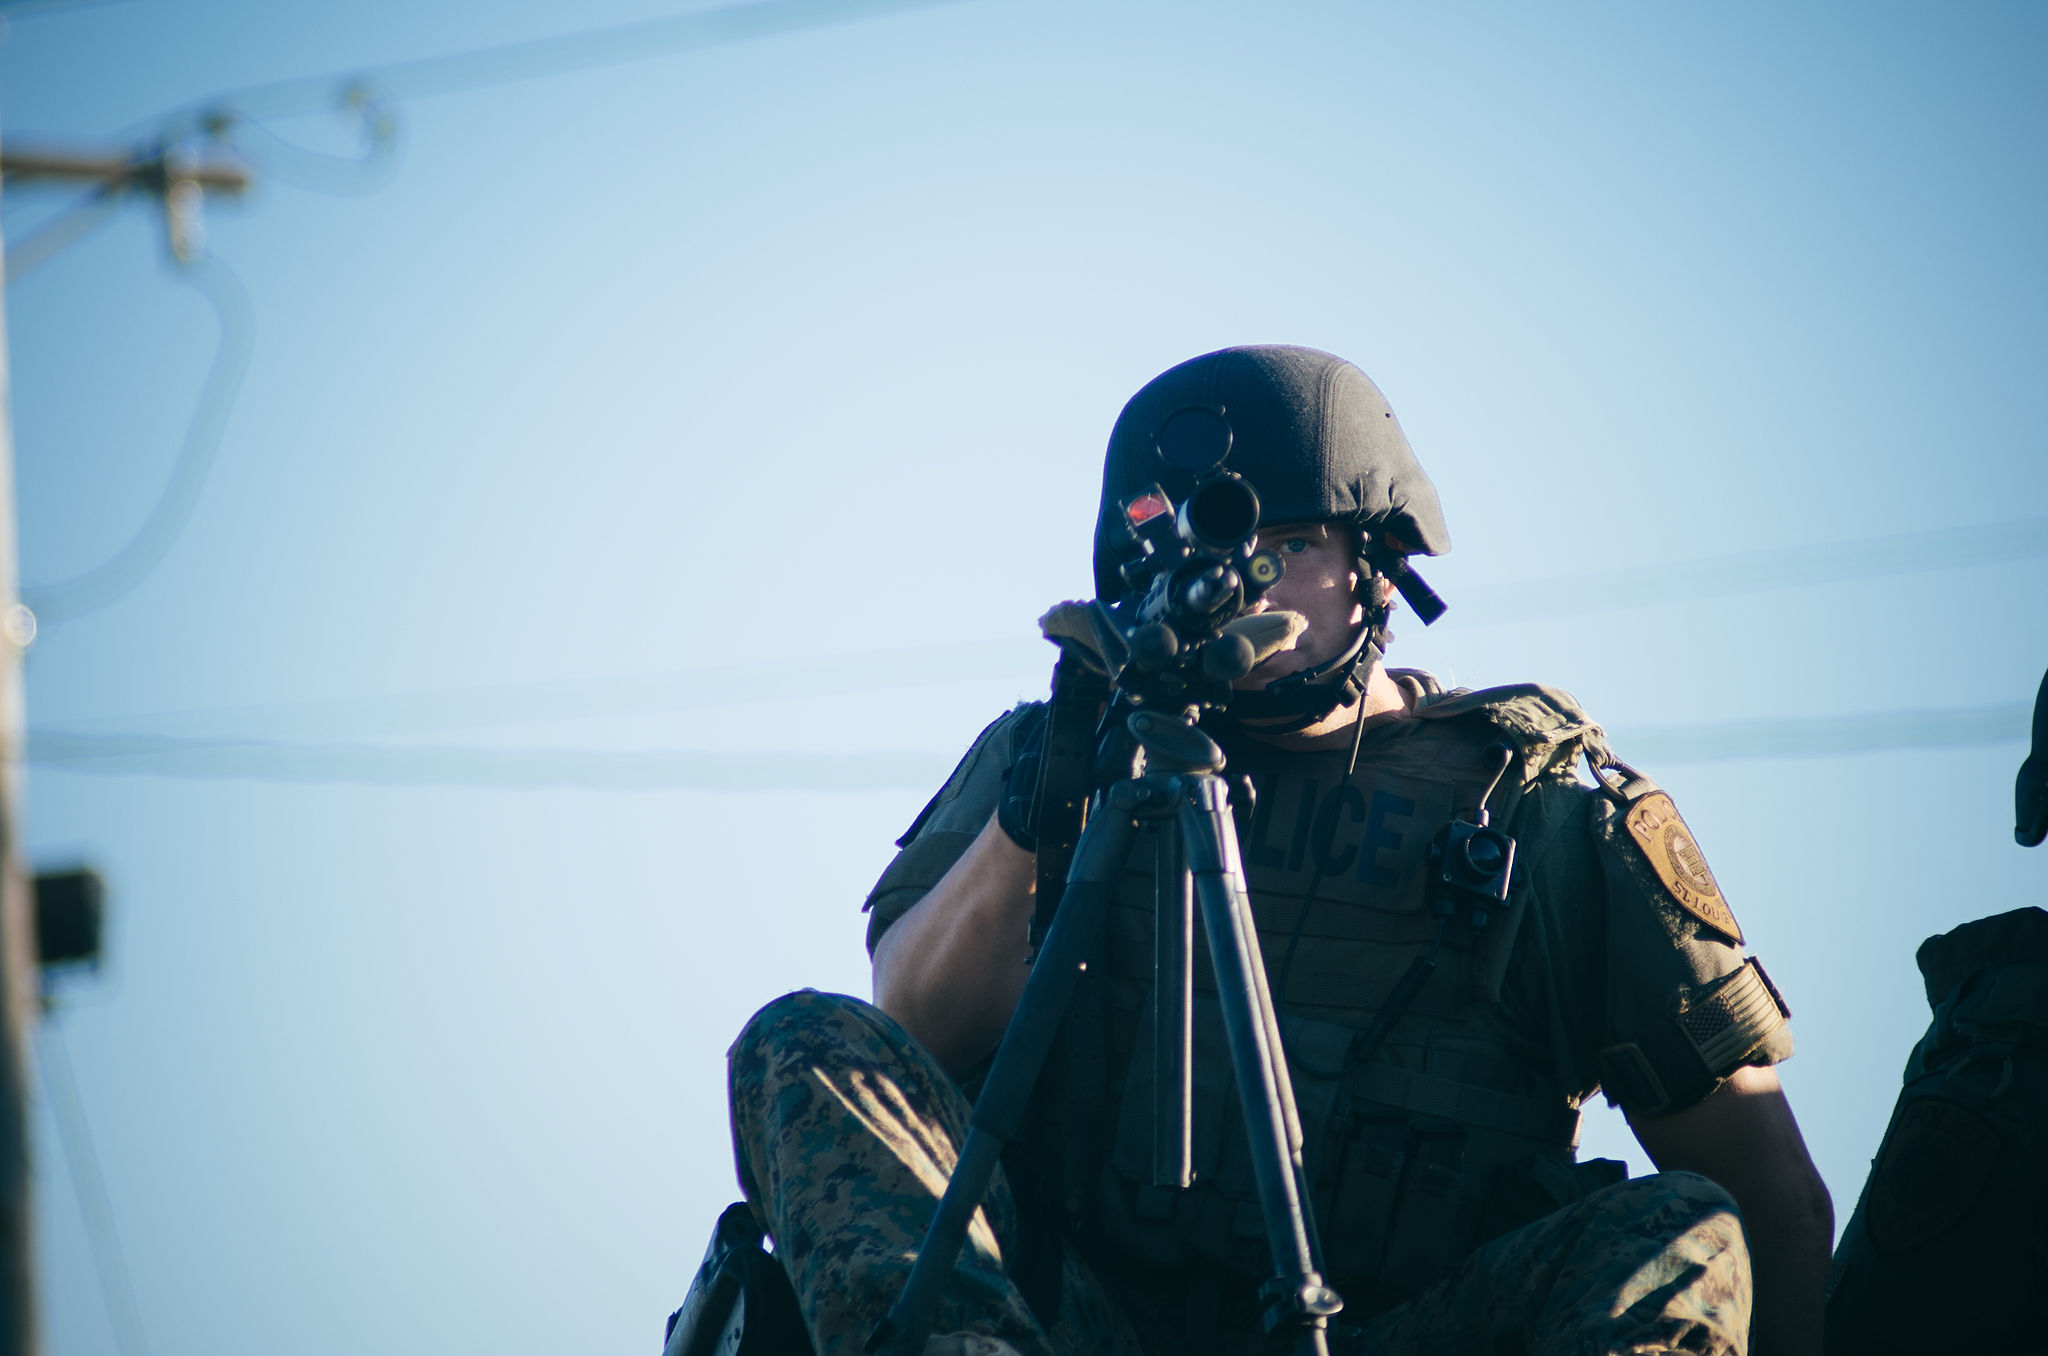 Sharpshooter in Ferguson, August 13, 2014 (photo by Jamelle Bouie)